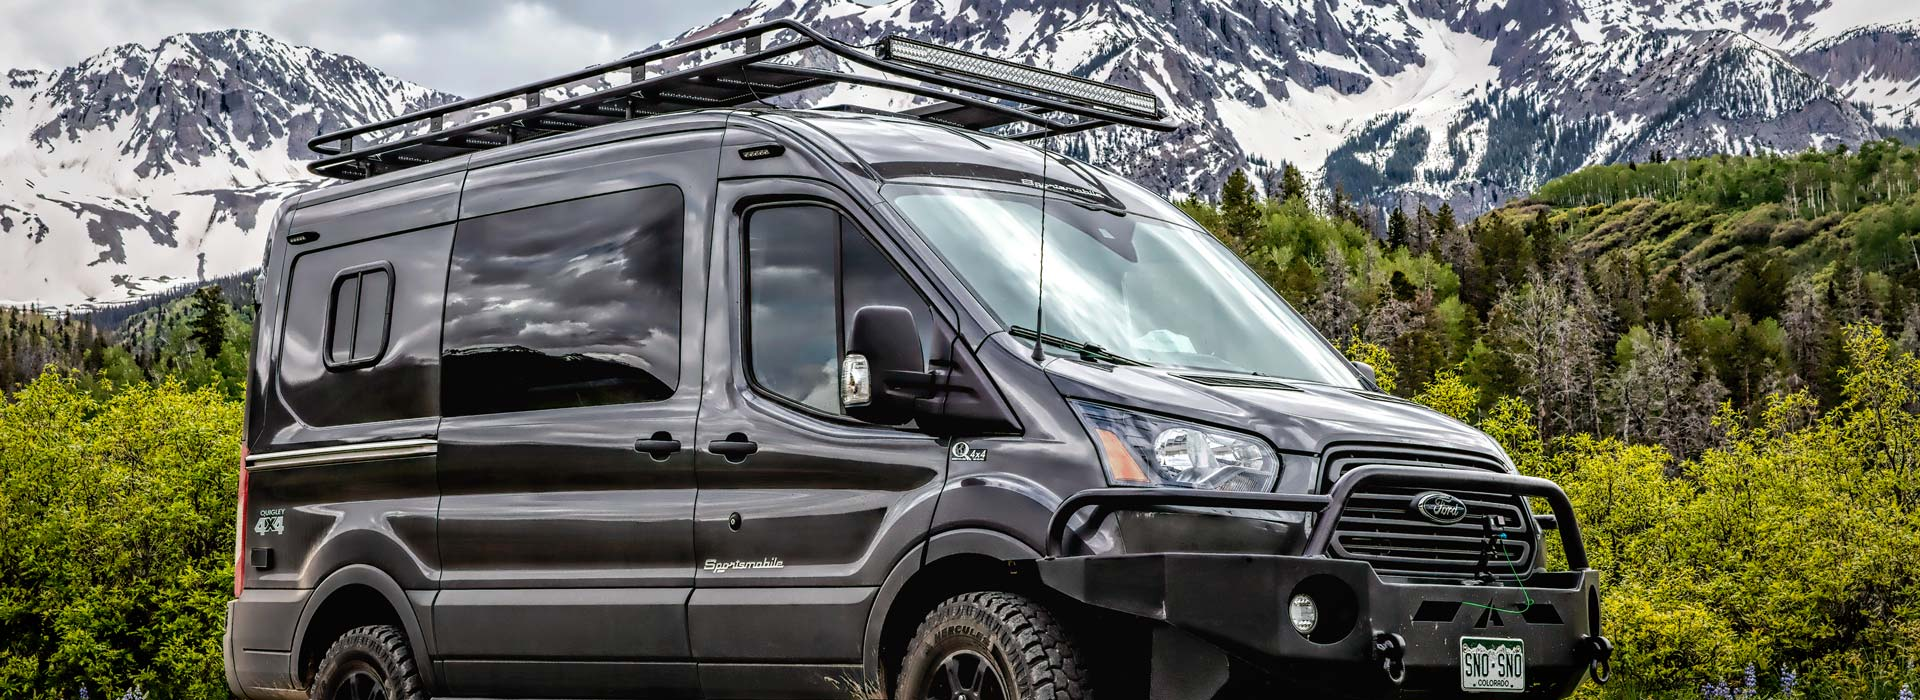 Sportsmobile Custom Camper Vans Your Home Away From Home